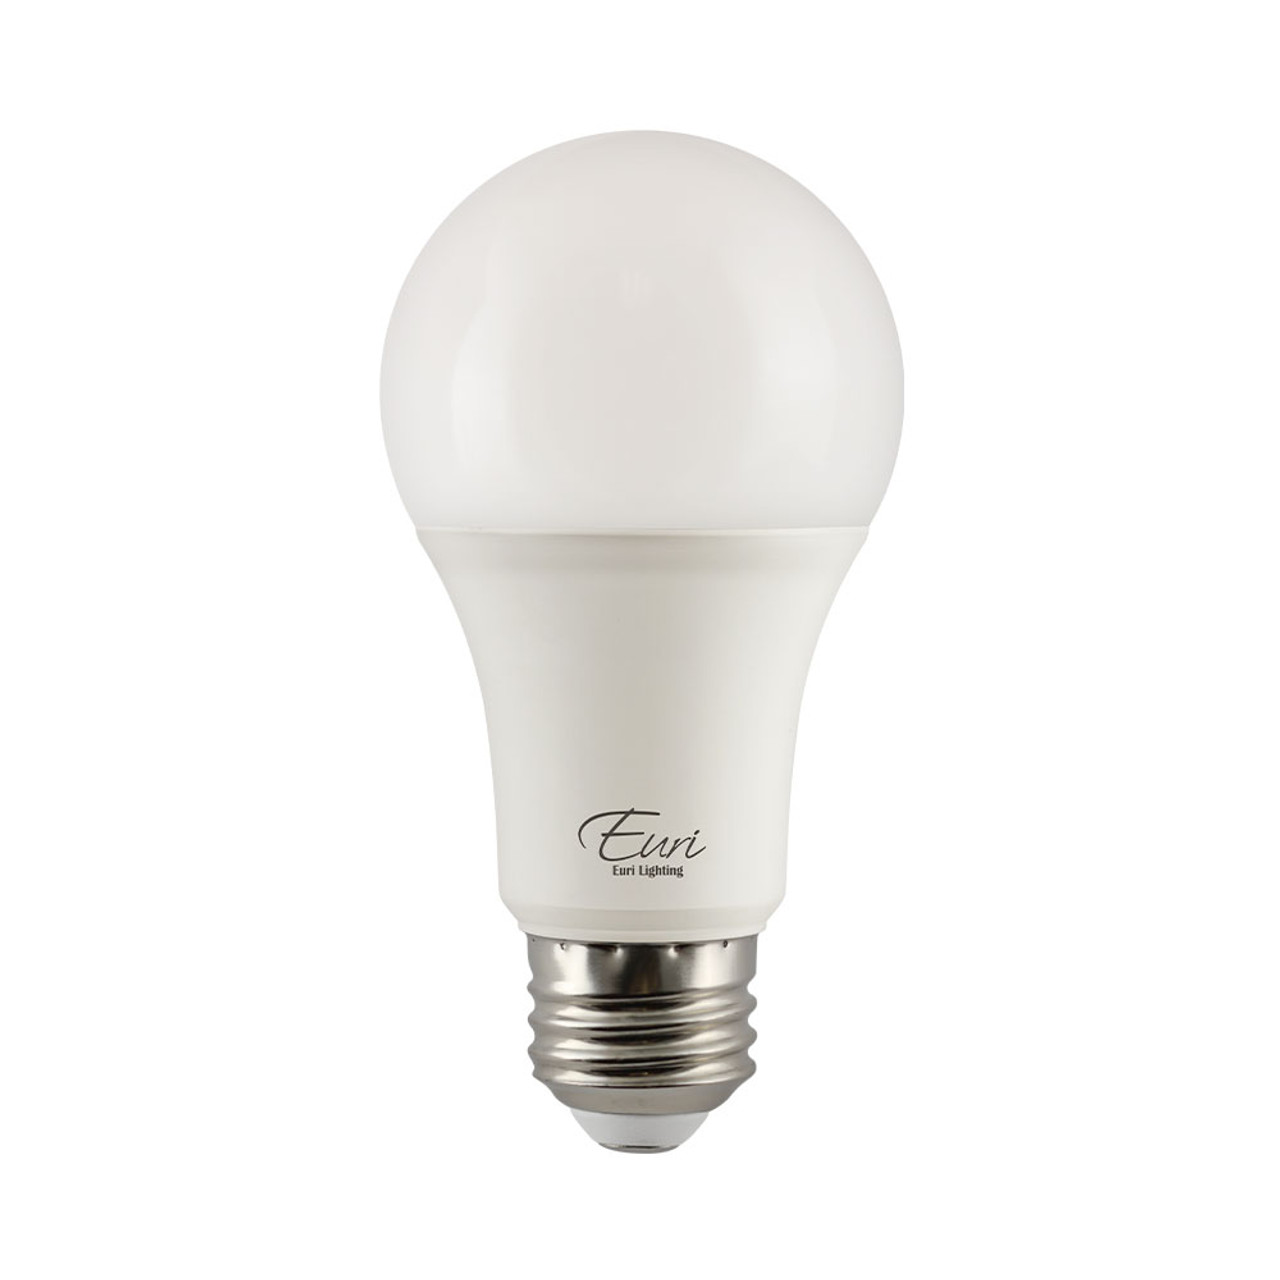 A19, Omni-Directional, LED Light Bulb, Dimmable, 15 W, 120 V, 1600 lm, 3000 K, E26 Base (EA19-15W2000e)